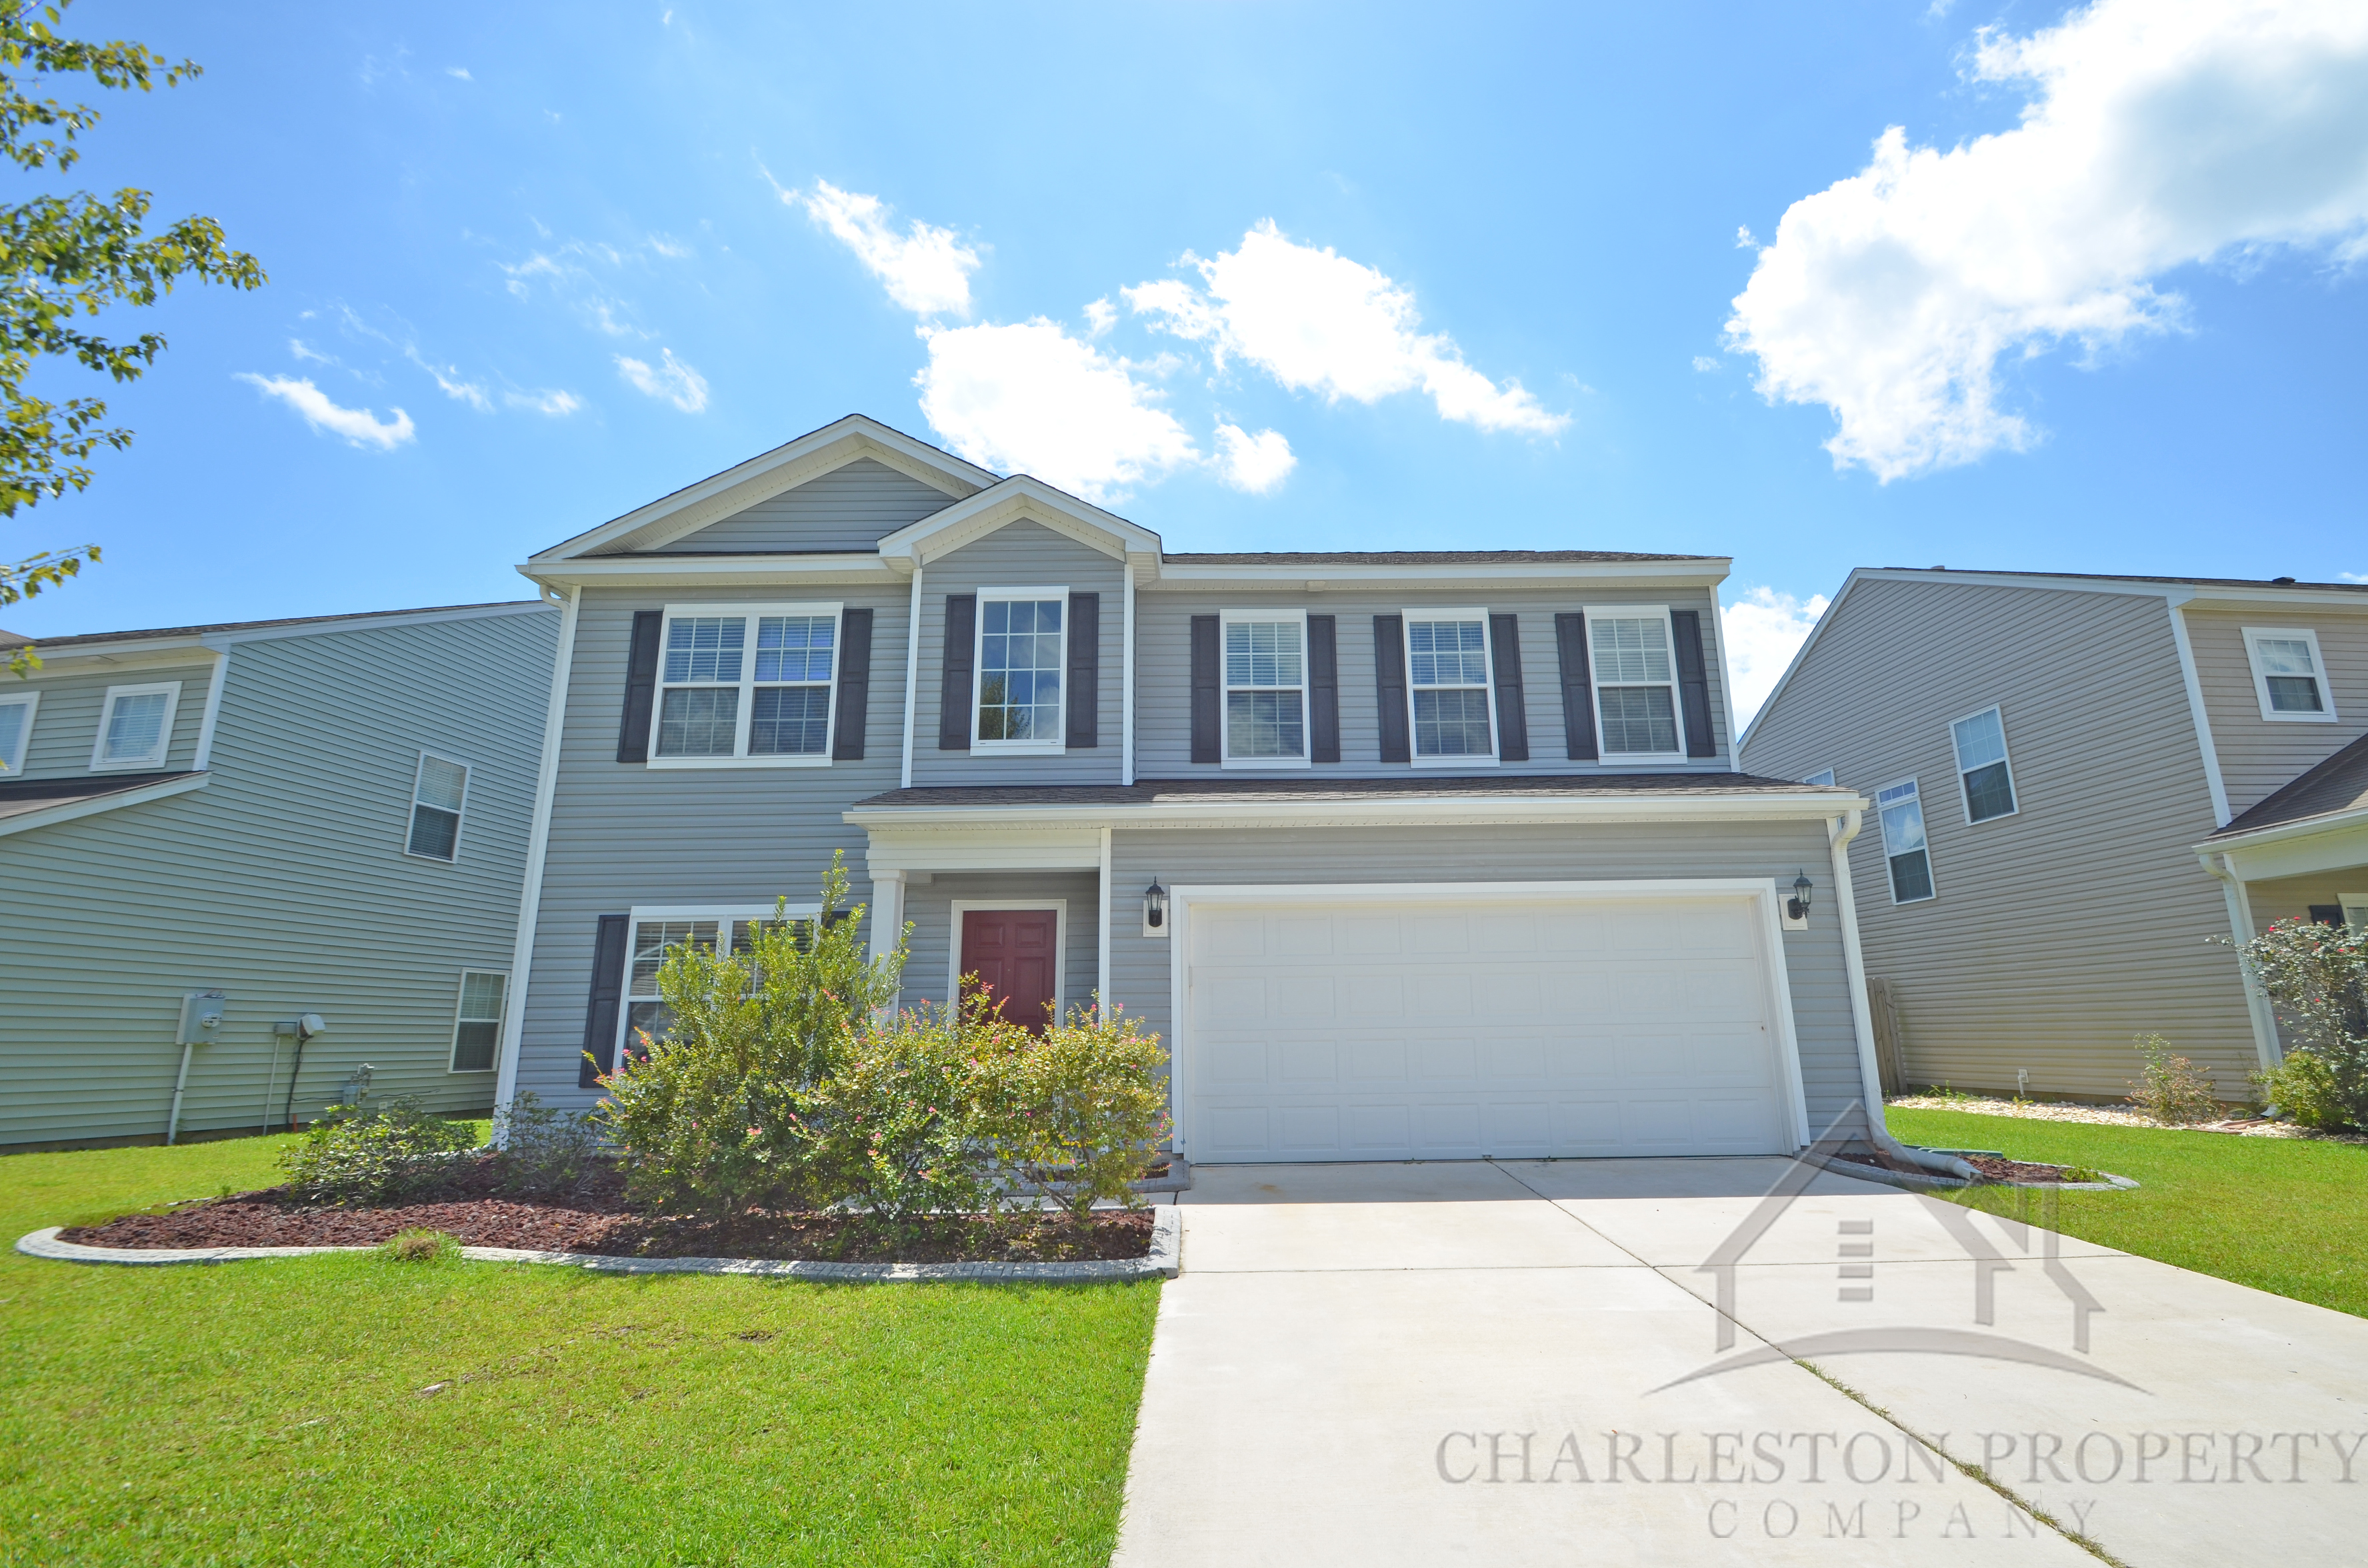 273 Mayfield Dr Goose Creek SC 29445-7320 - Photo 1